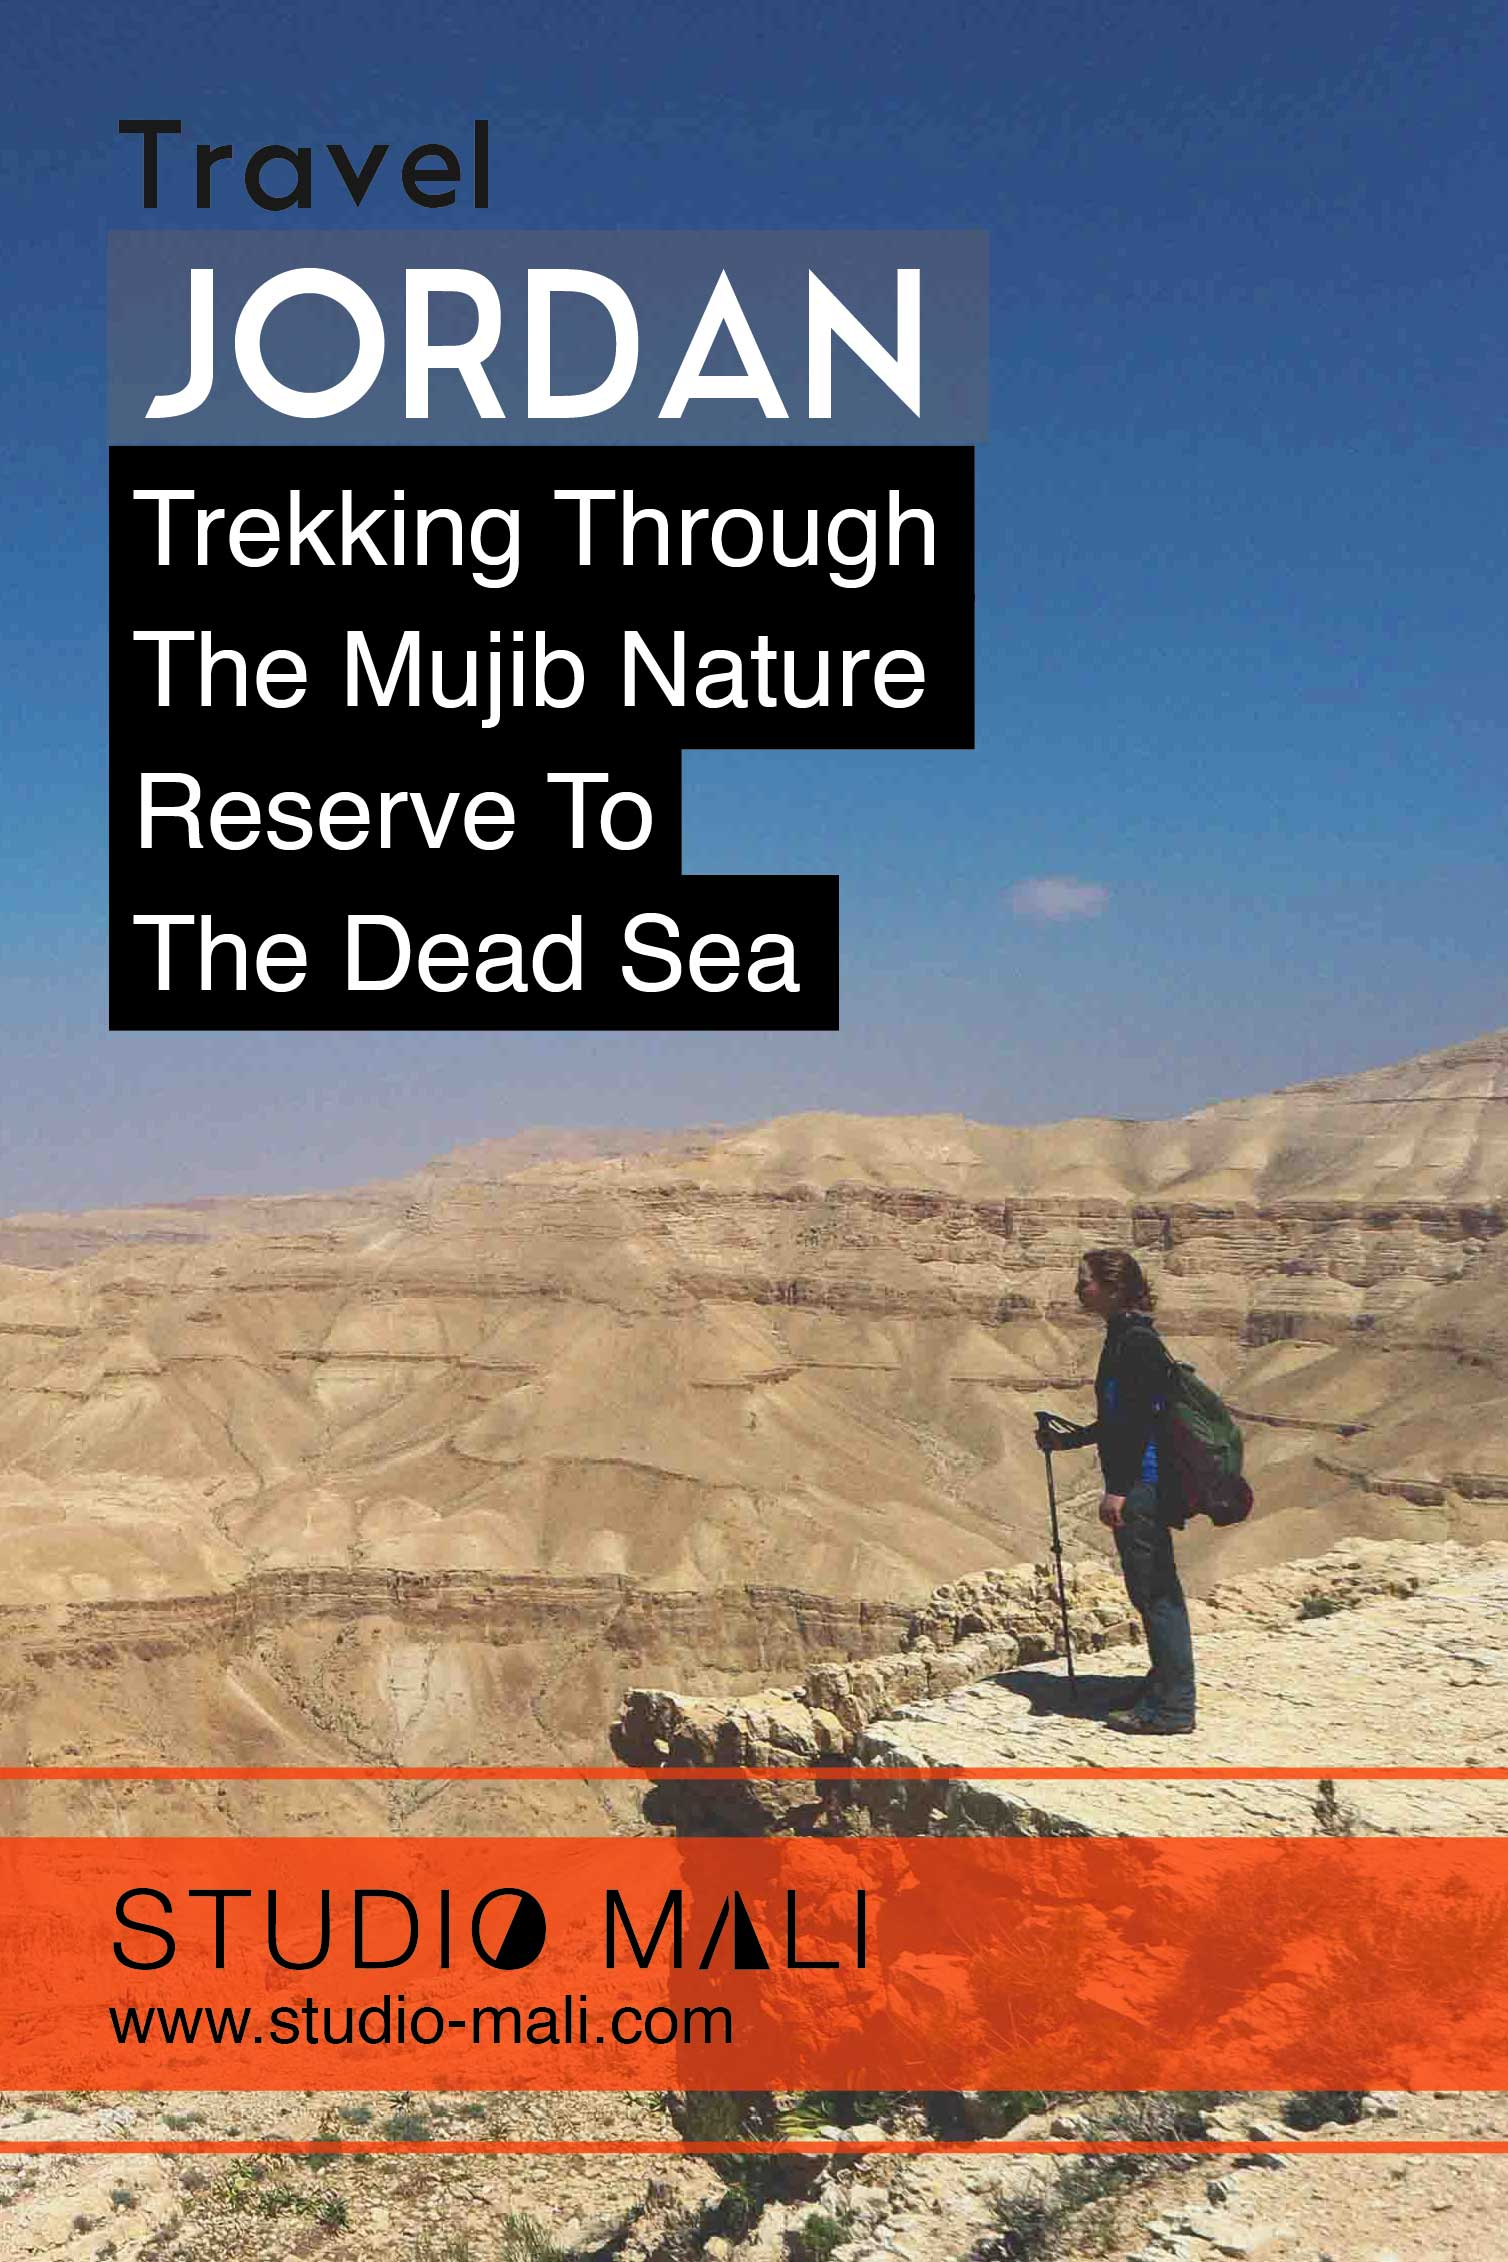 Jordan - Trekking Through The Mujib Nature Reserve To The Dead Sea, By Studio Mali.jpg